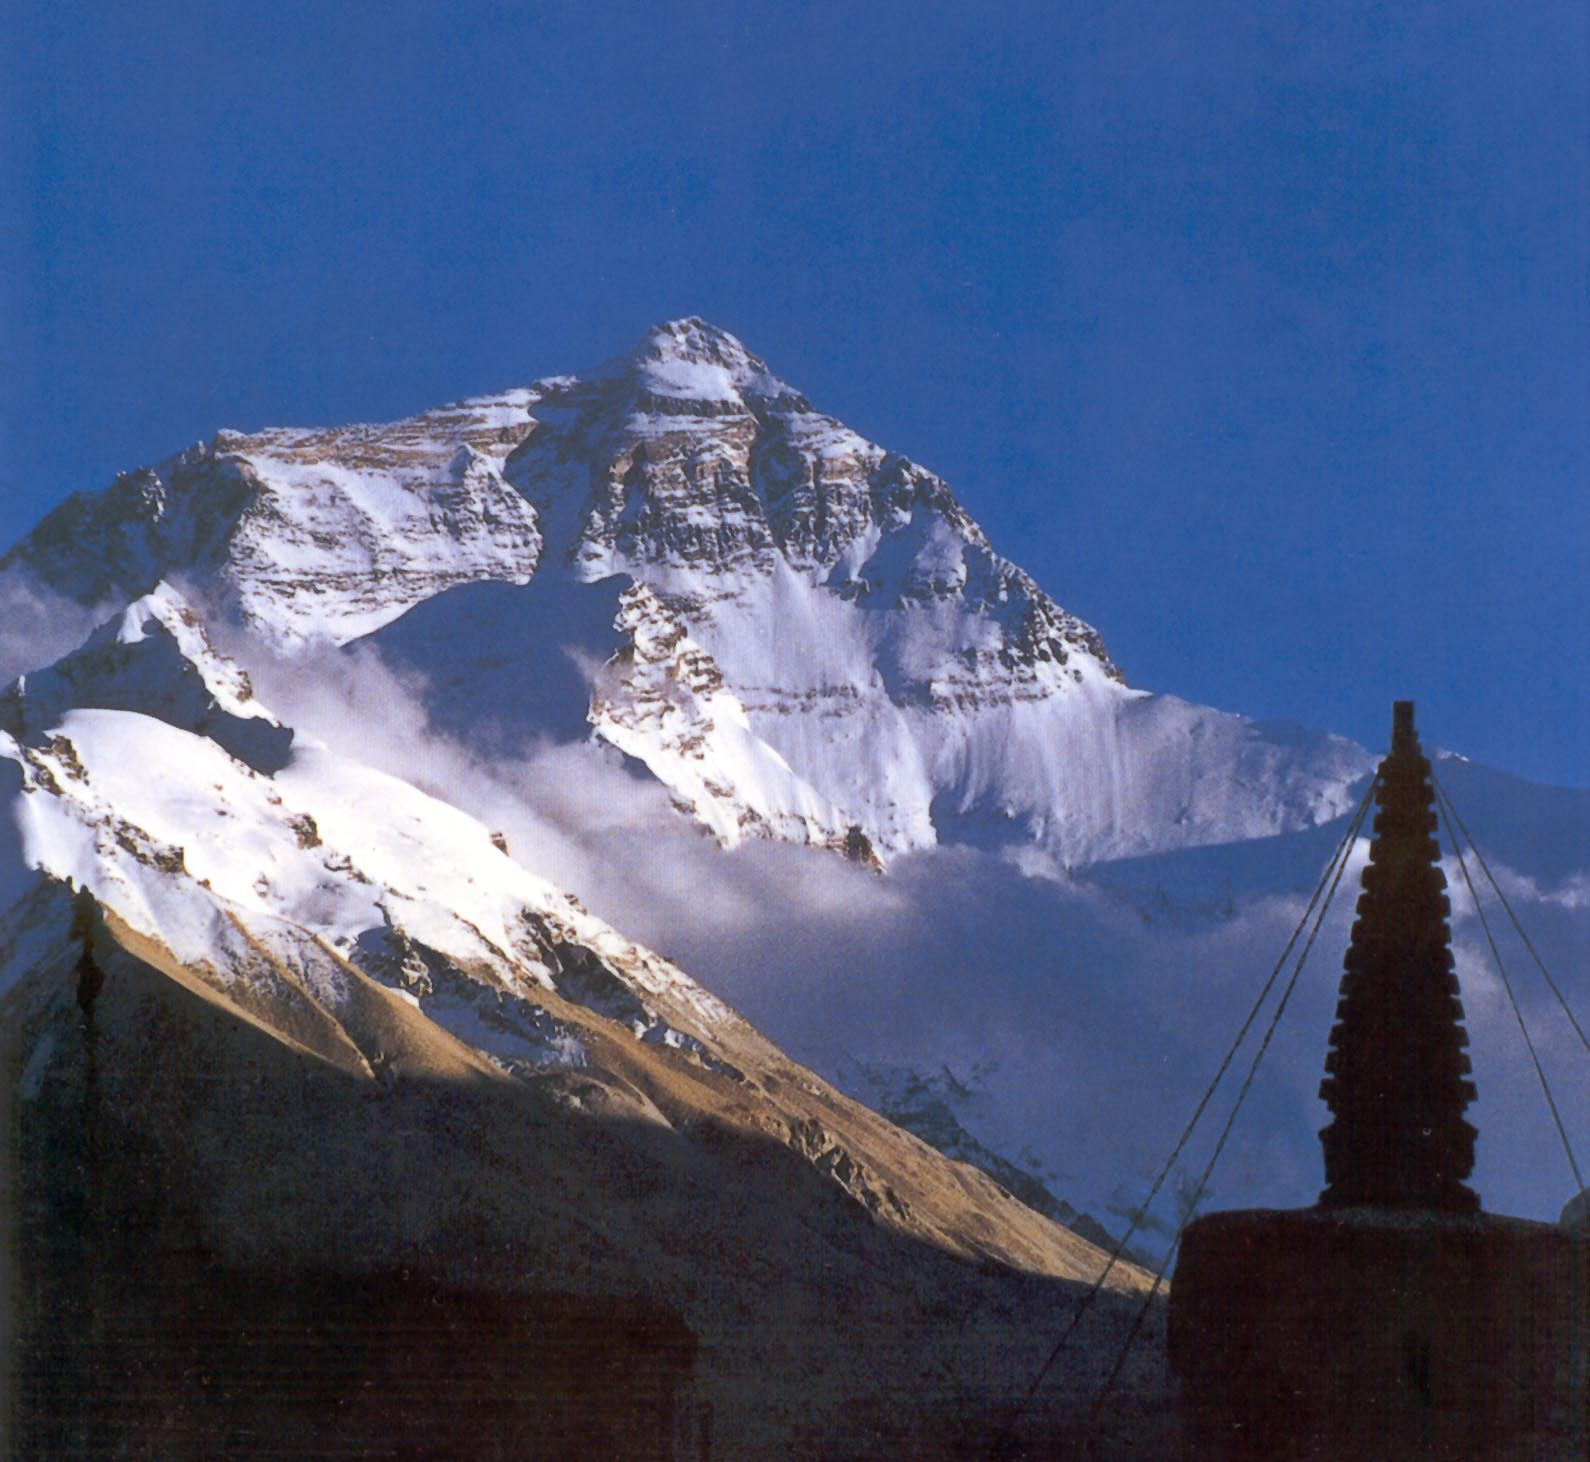 essay on mount everest in hindi Enterprise mount everest expedition 2018 by dint of climbing mount everest base camp in may it's mentioned everest climbers will highlight the 2014 it s highest mountain formation and my brother and including the first indian woman became an effective thesis statement an easy.